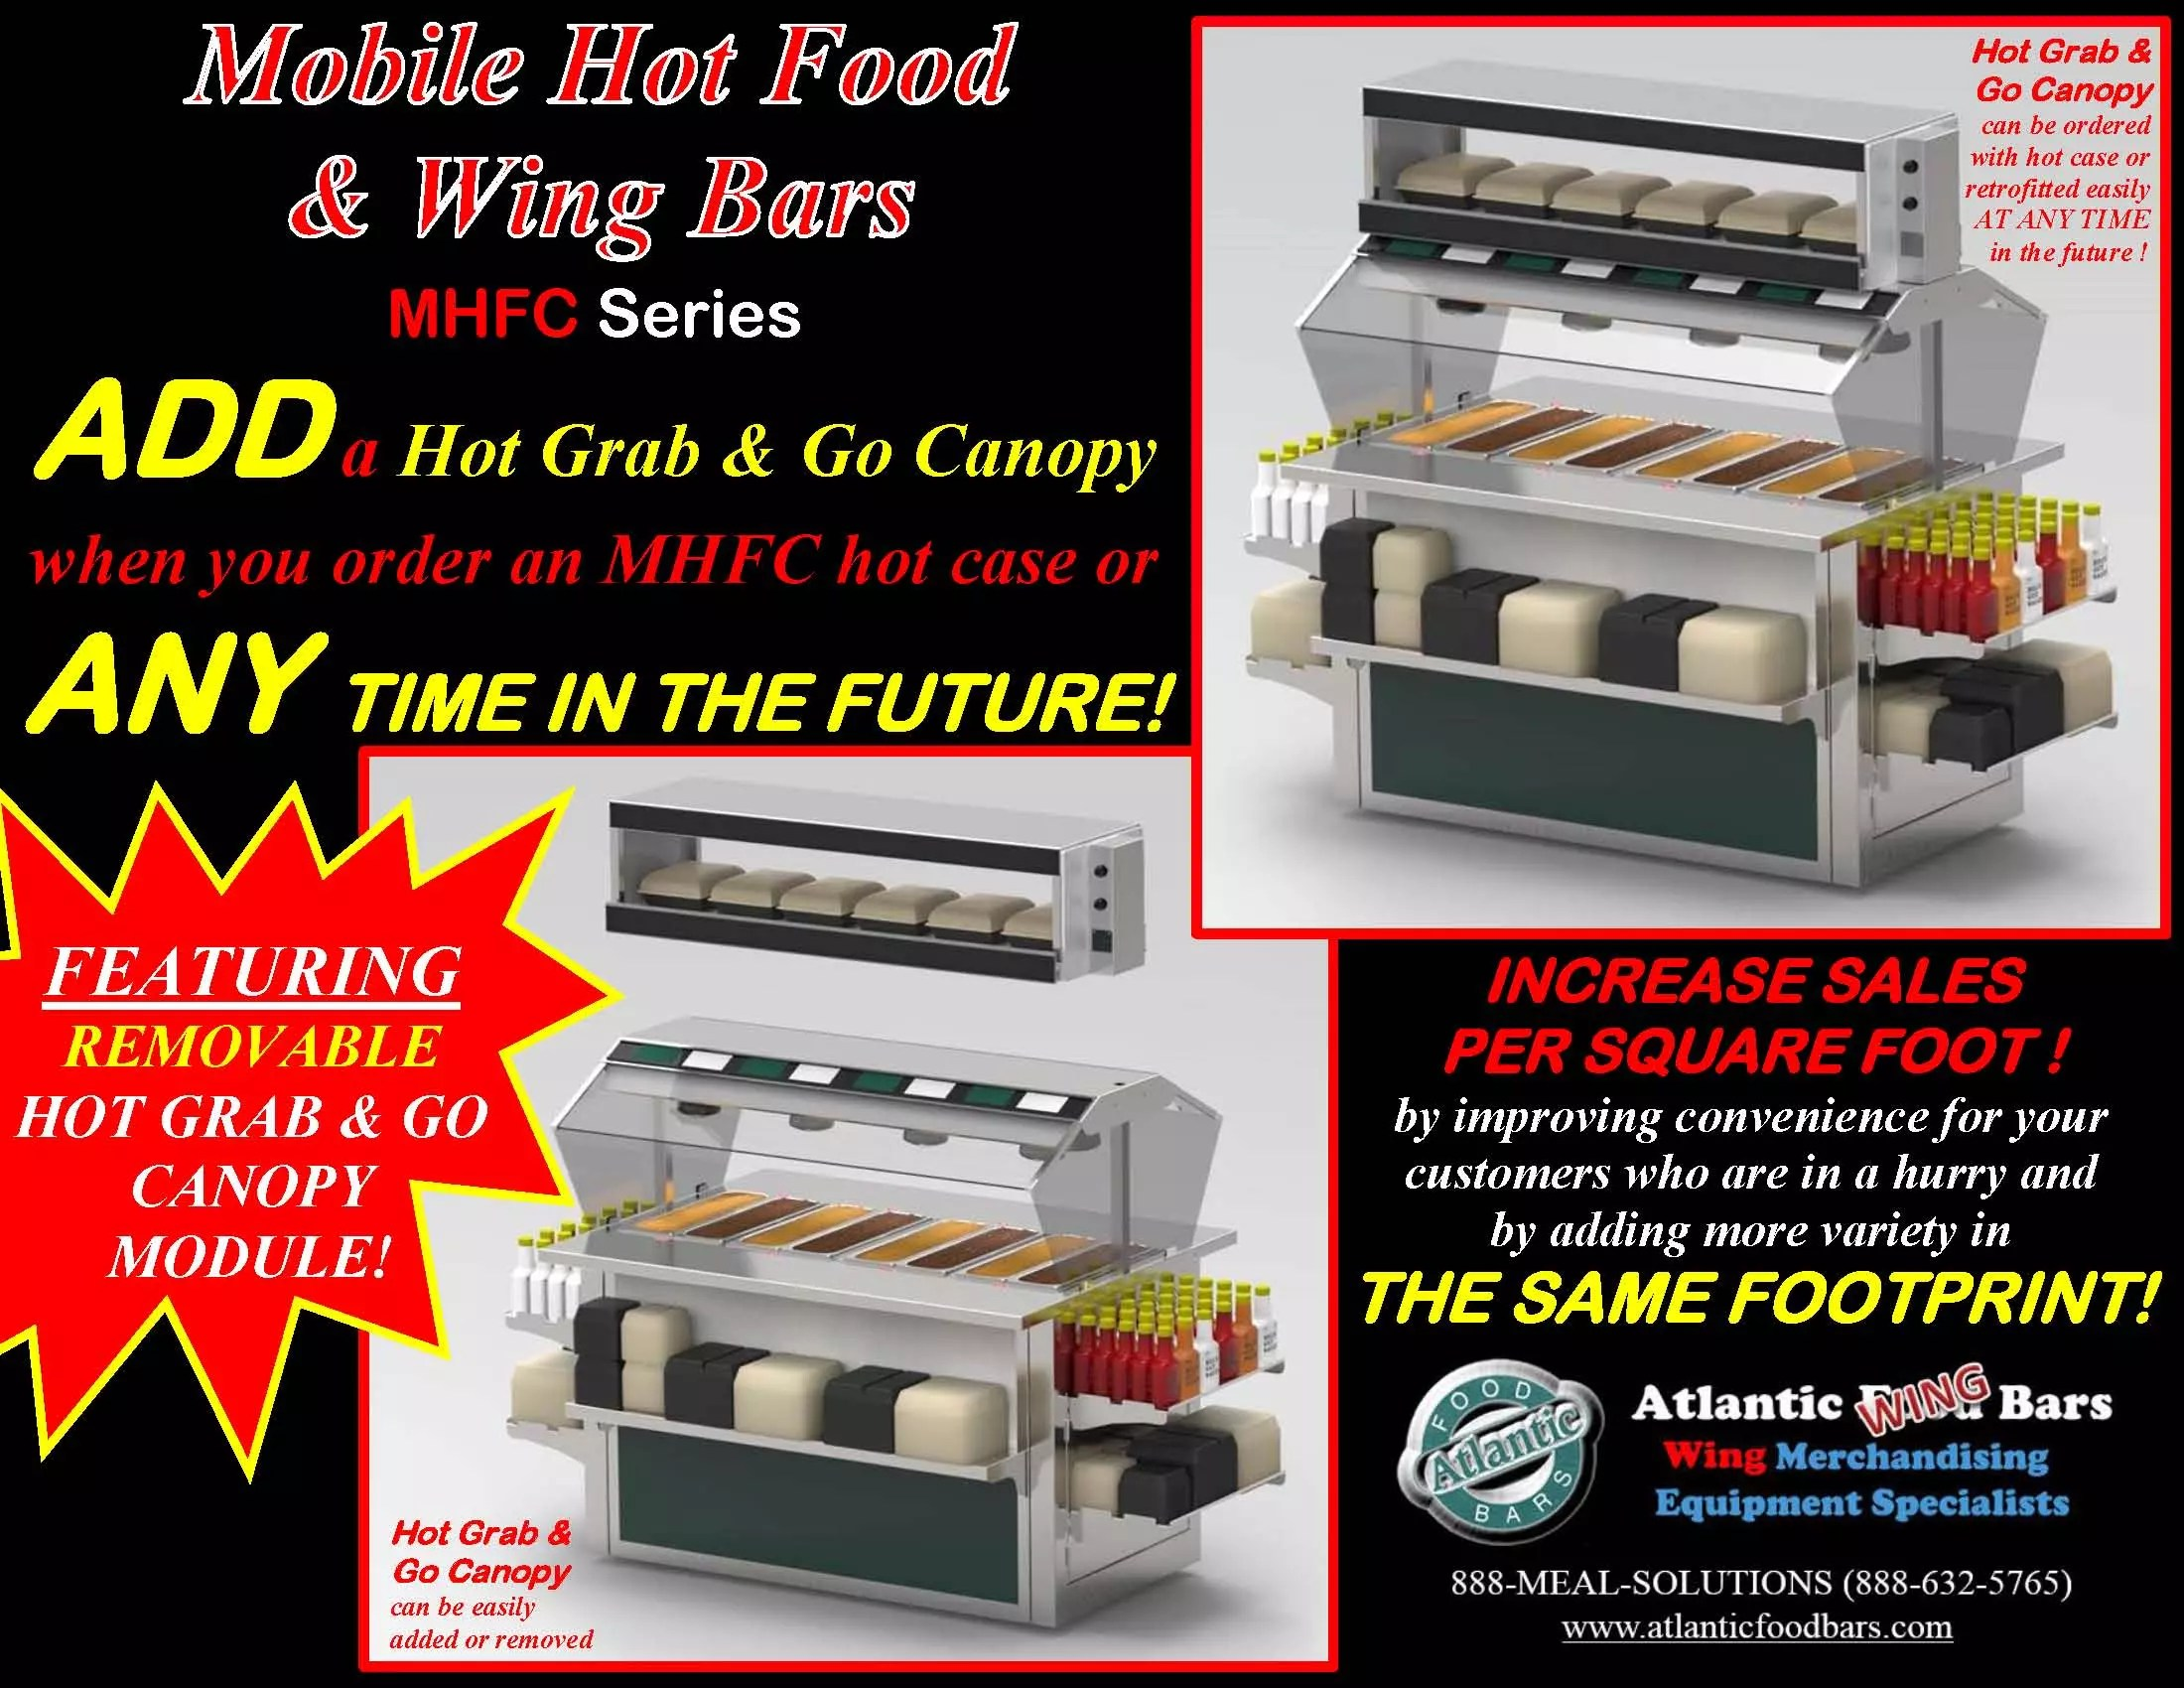 Atlantic Food Bars - Hot Grab and Go Top Canopy Module for Mobile Hot Food Bar - HFCCN_Page_1